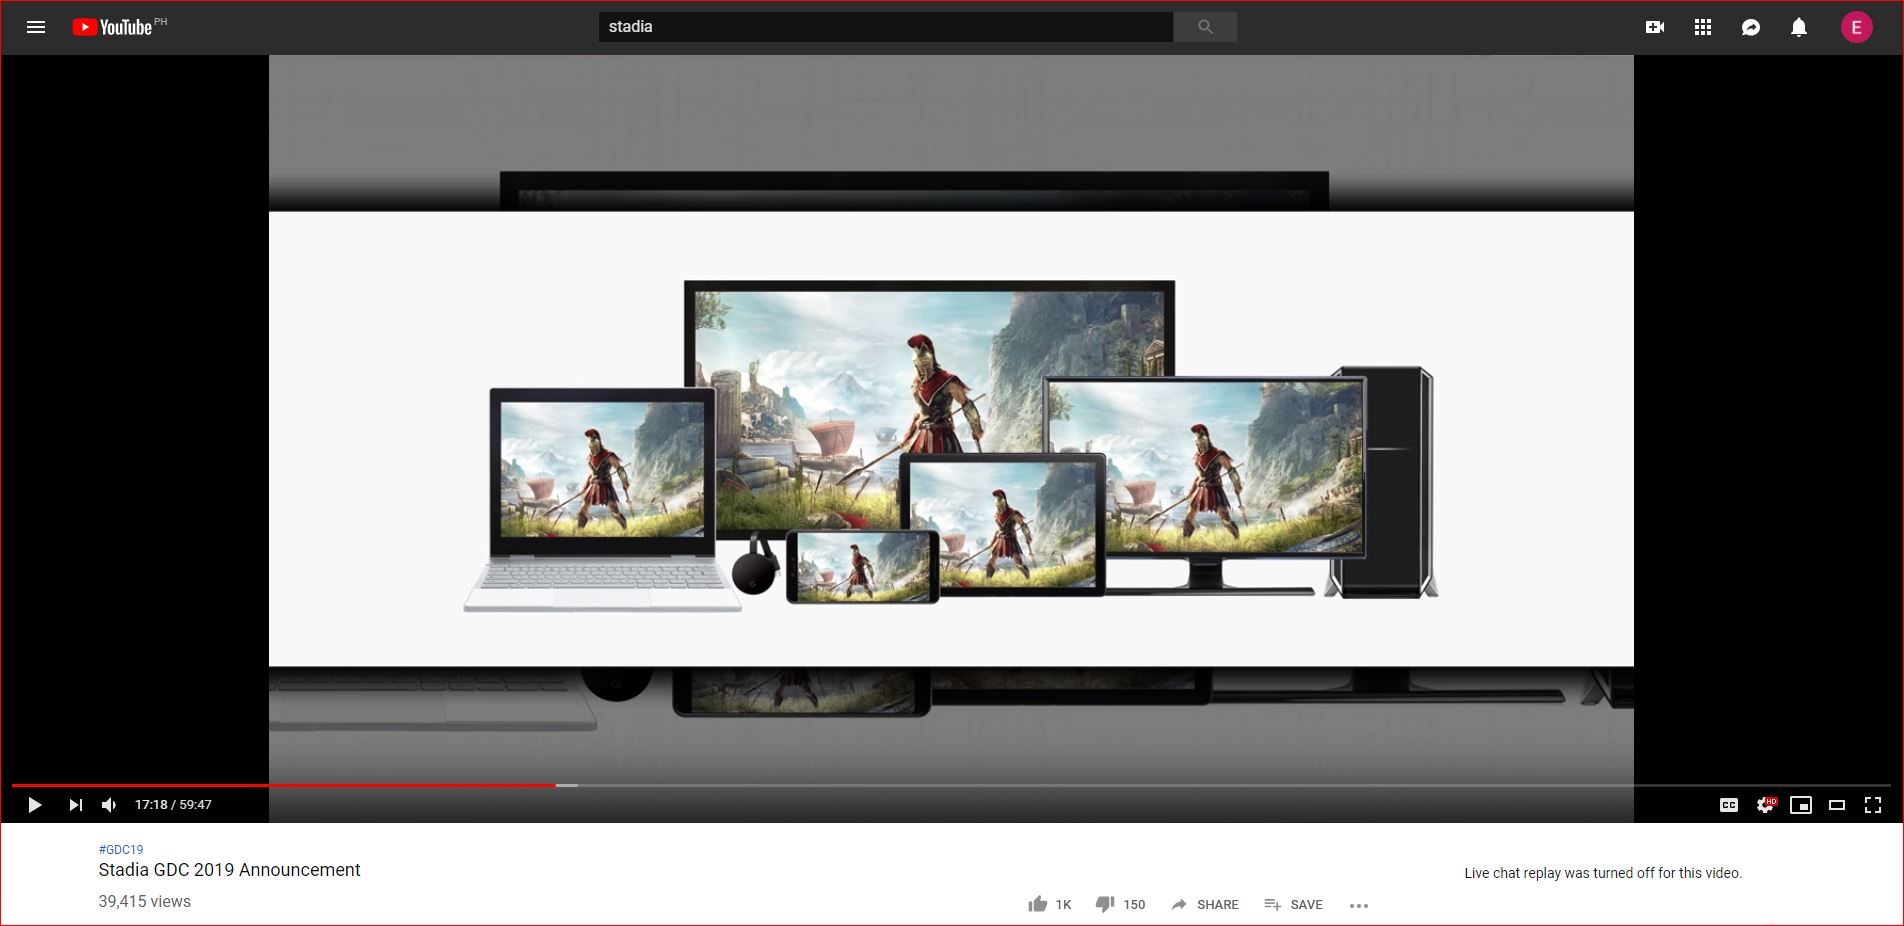 Entering Stadia: Google's Cloud-based Gaming Service